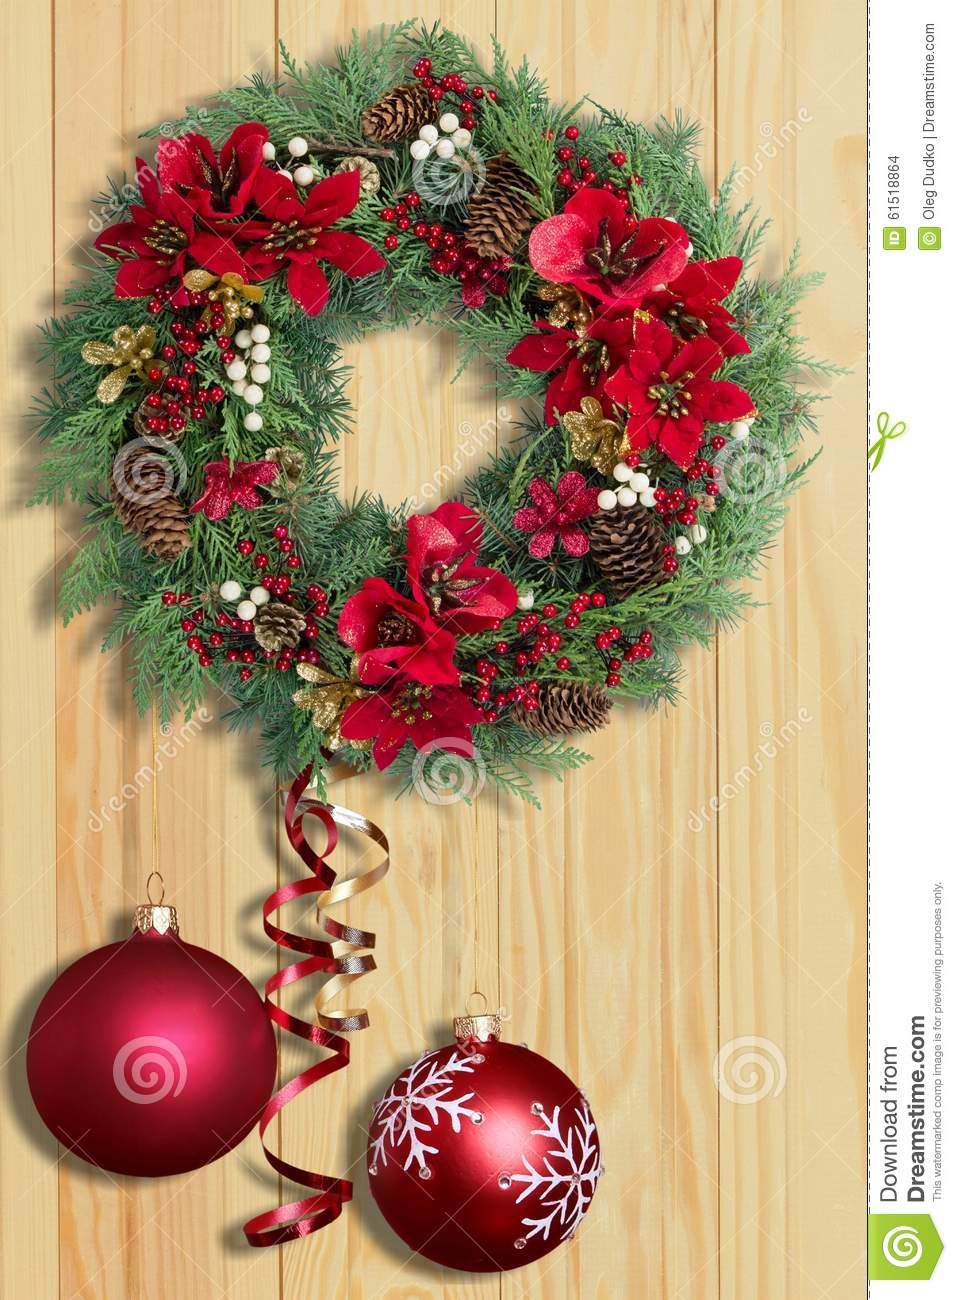 Wreath stock photo image 61518864 for 5ft poinsettia garland christmas decoration